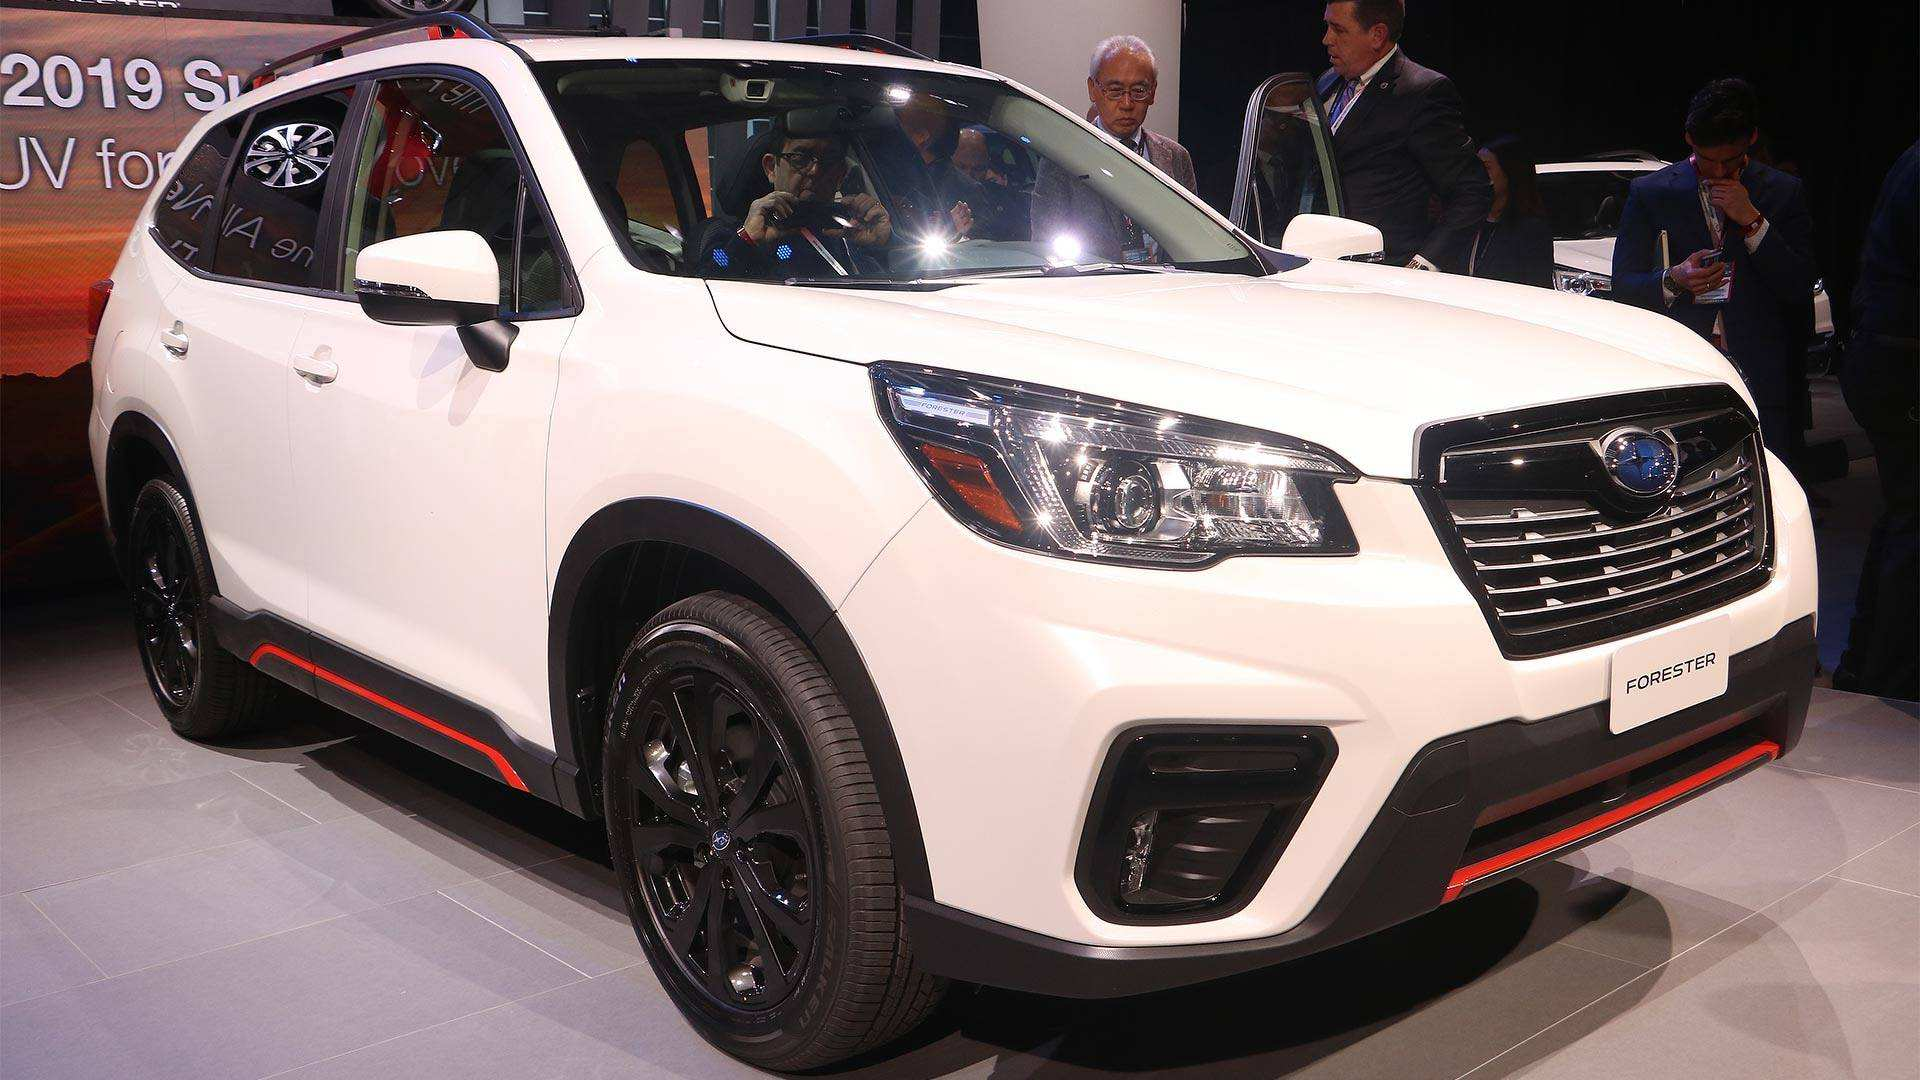 25 A Subaru Forester 2019 Gas Mileage Price